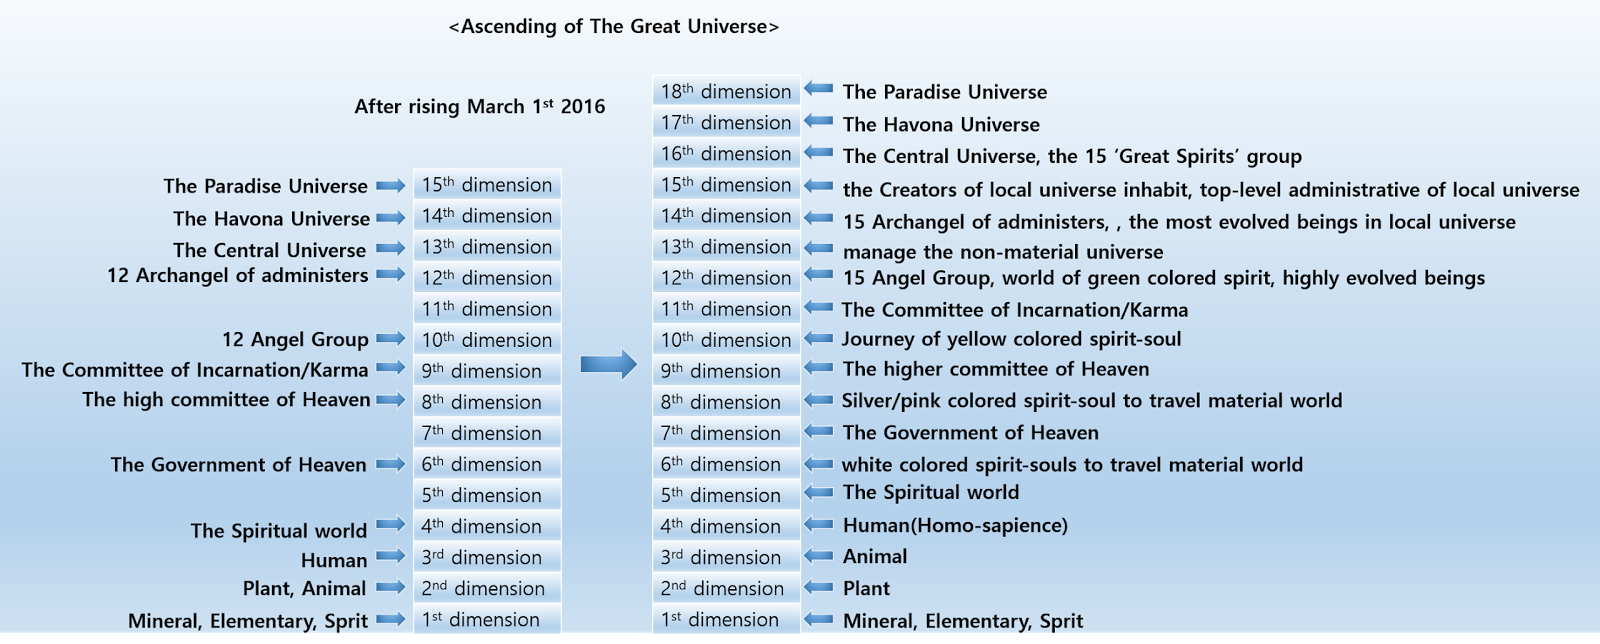 the dimensional ascension of the great universe the tree of life